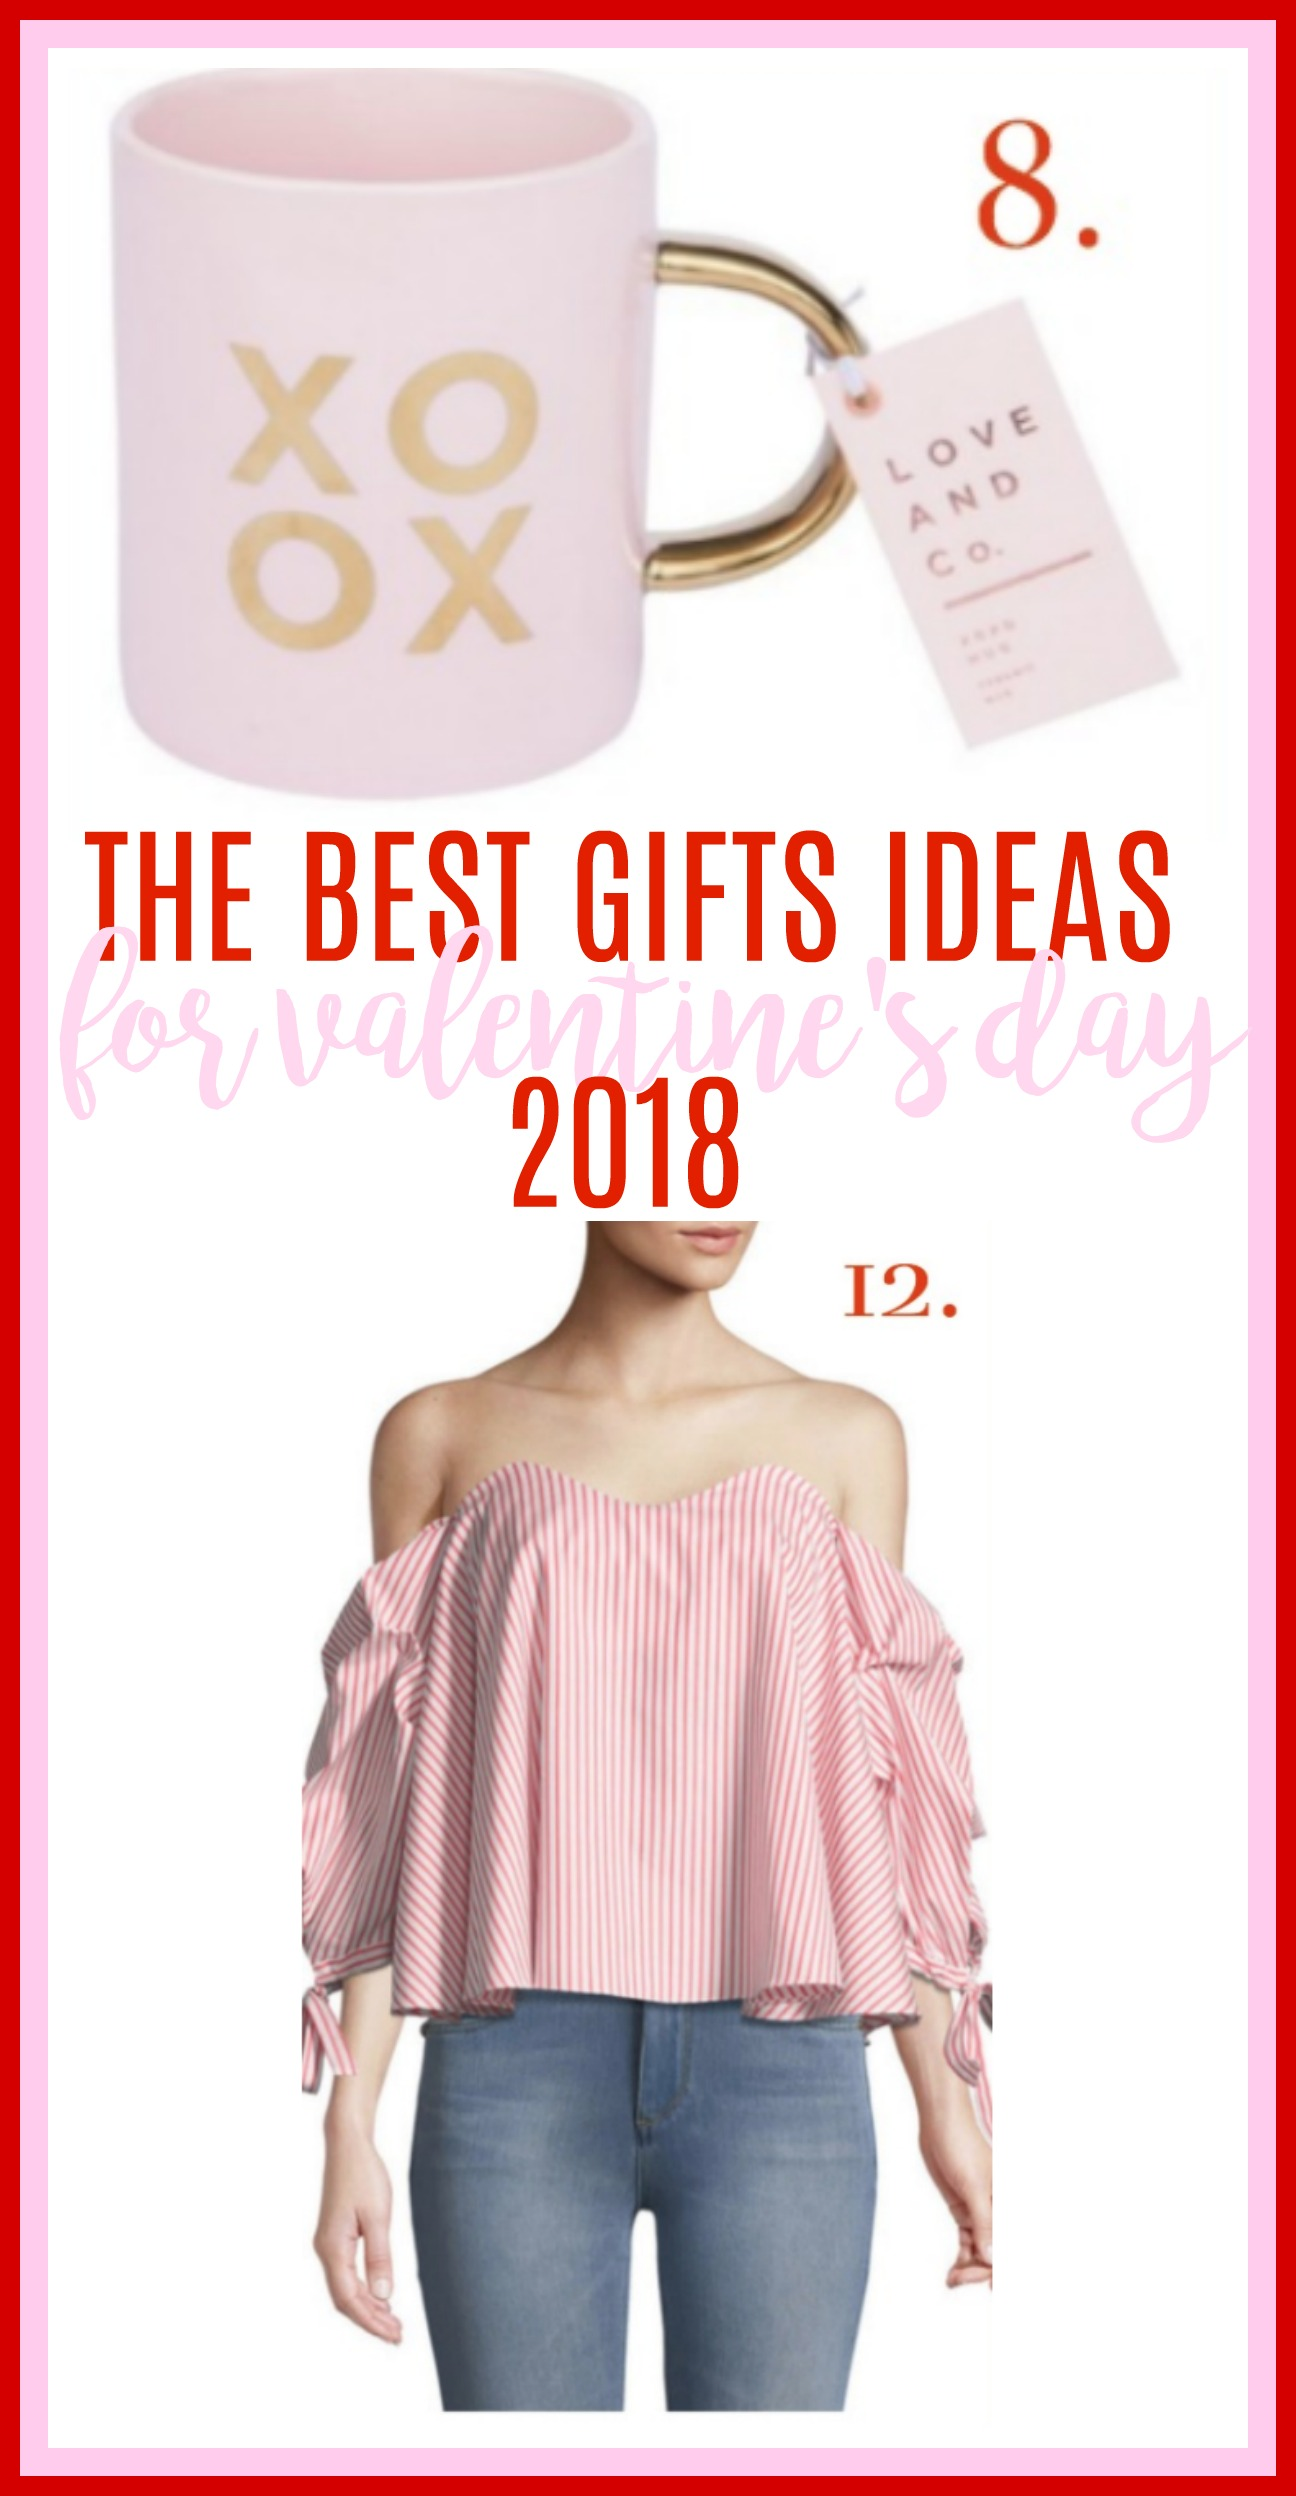 valentine's day, valentine's day gift ideas, gifts for girlfriends, gifts for boyfriends, romantic gifts, valentine's day apparel